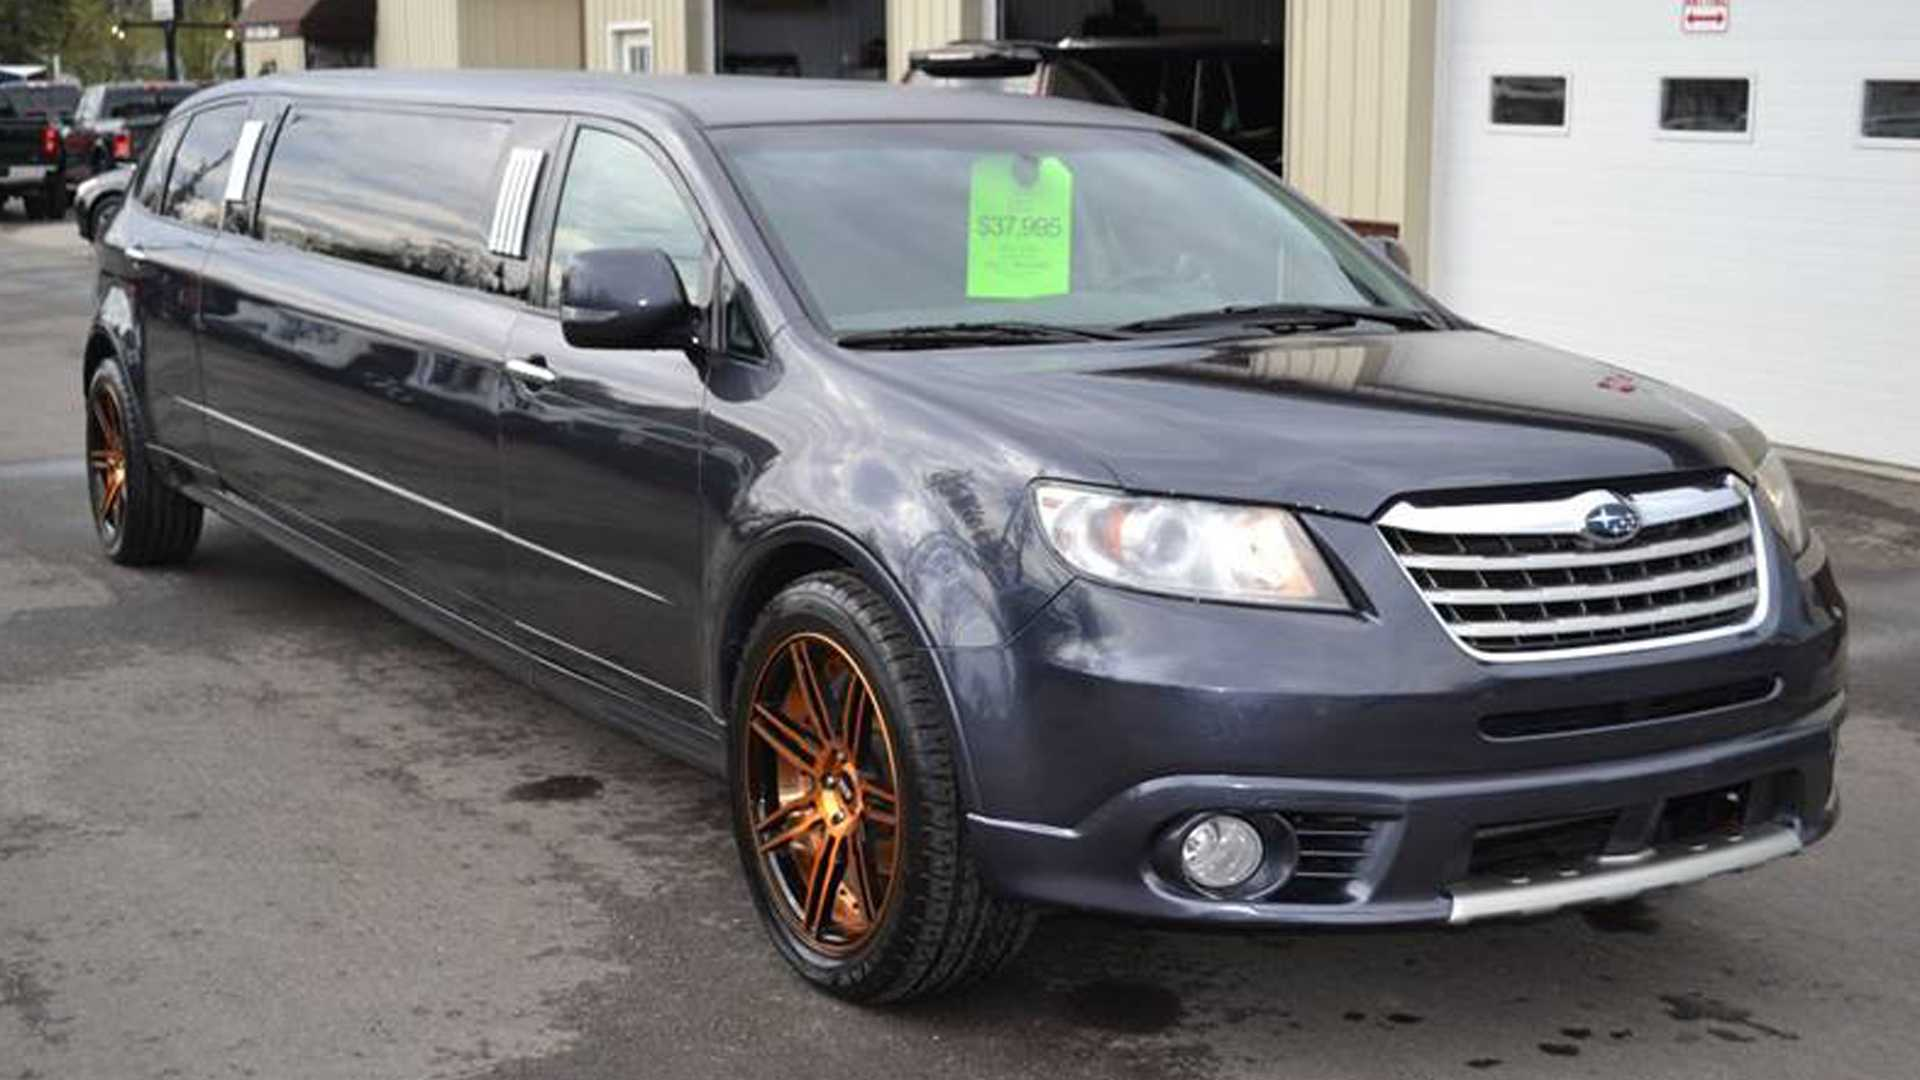 Buy This Bonkers Subaru Tribeca Limo, Become An Affluent Rally Fan